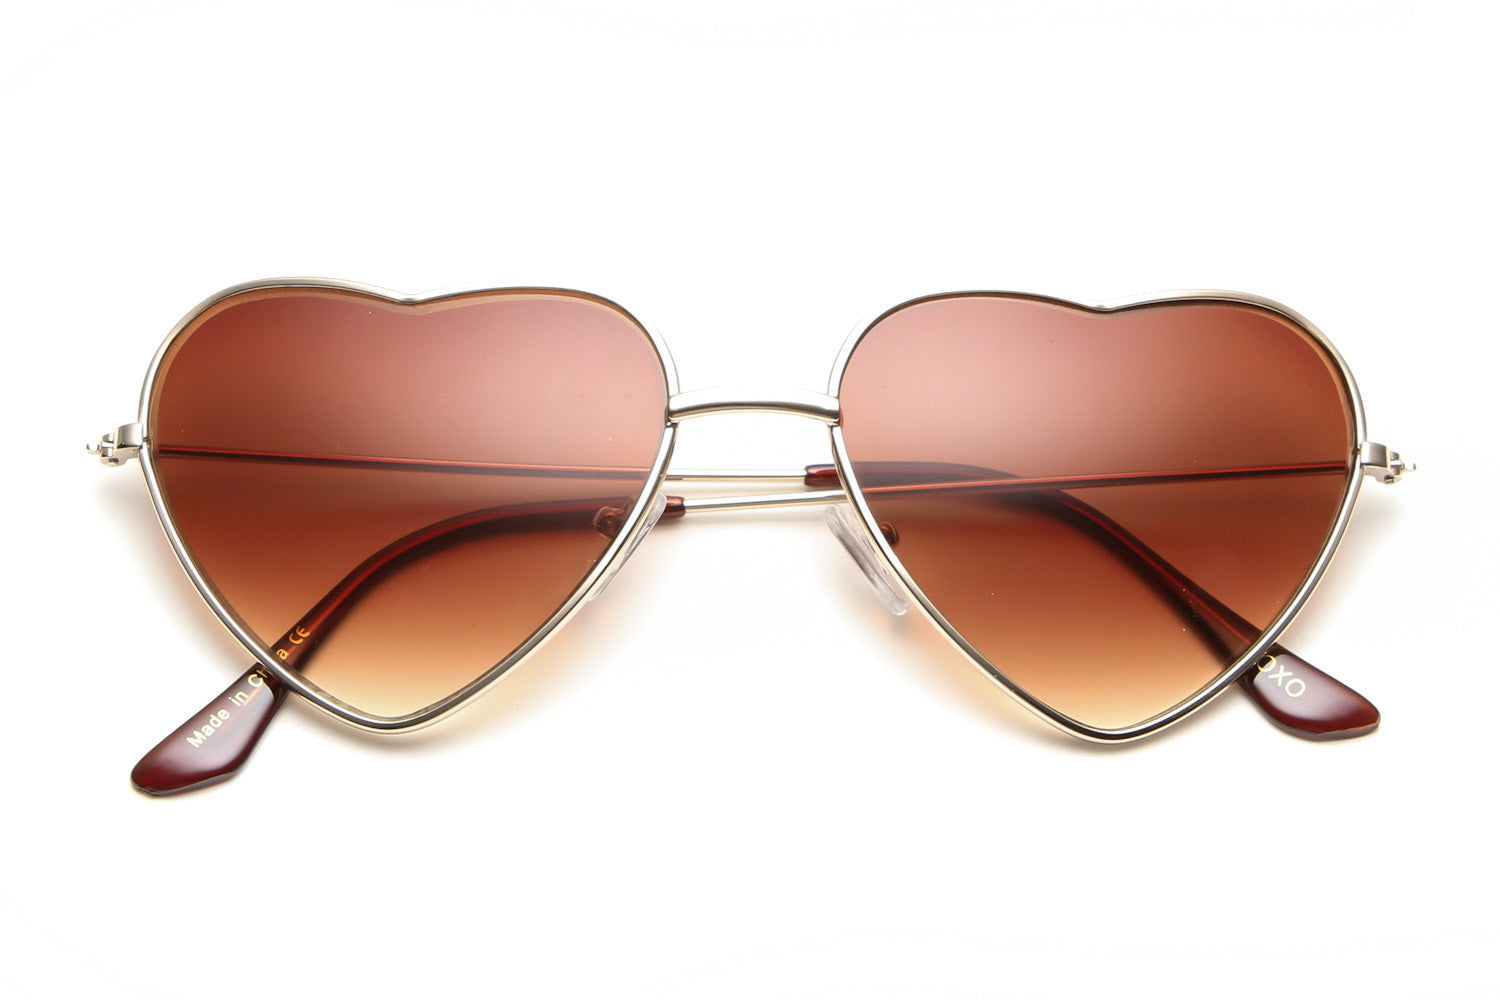 THINMODERNMETALHEARTSUNGLASSES